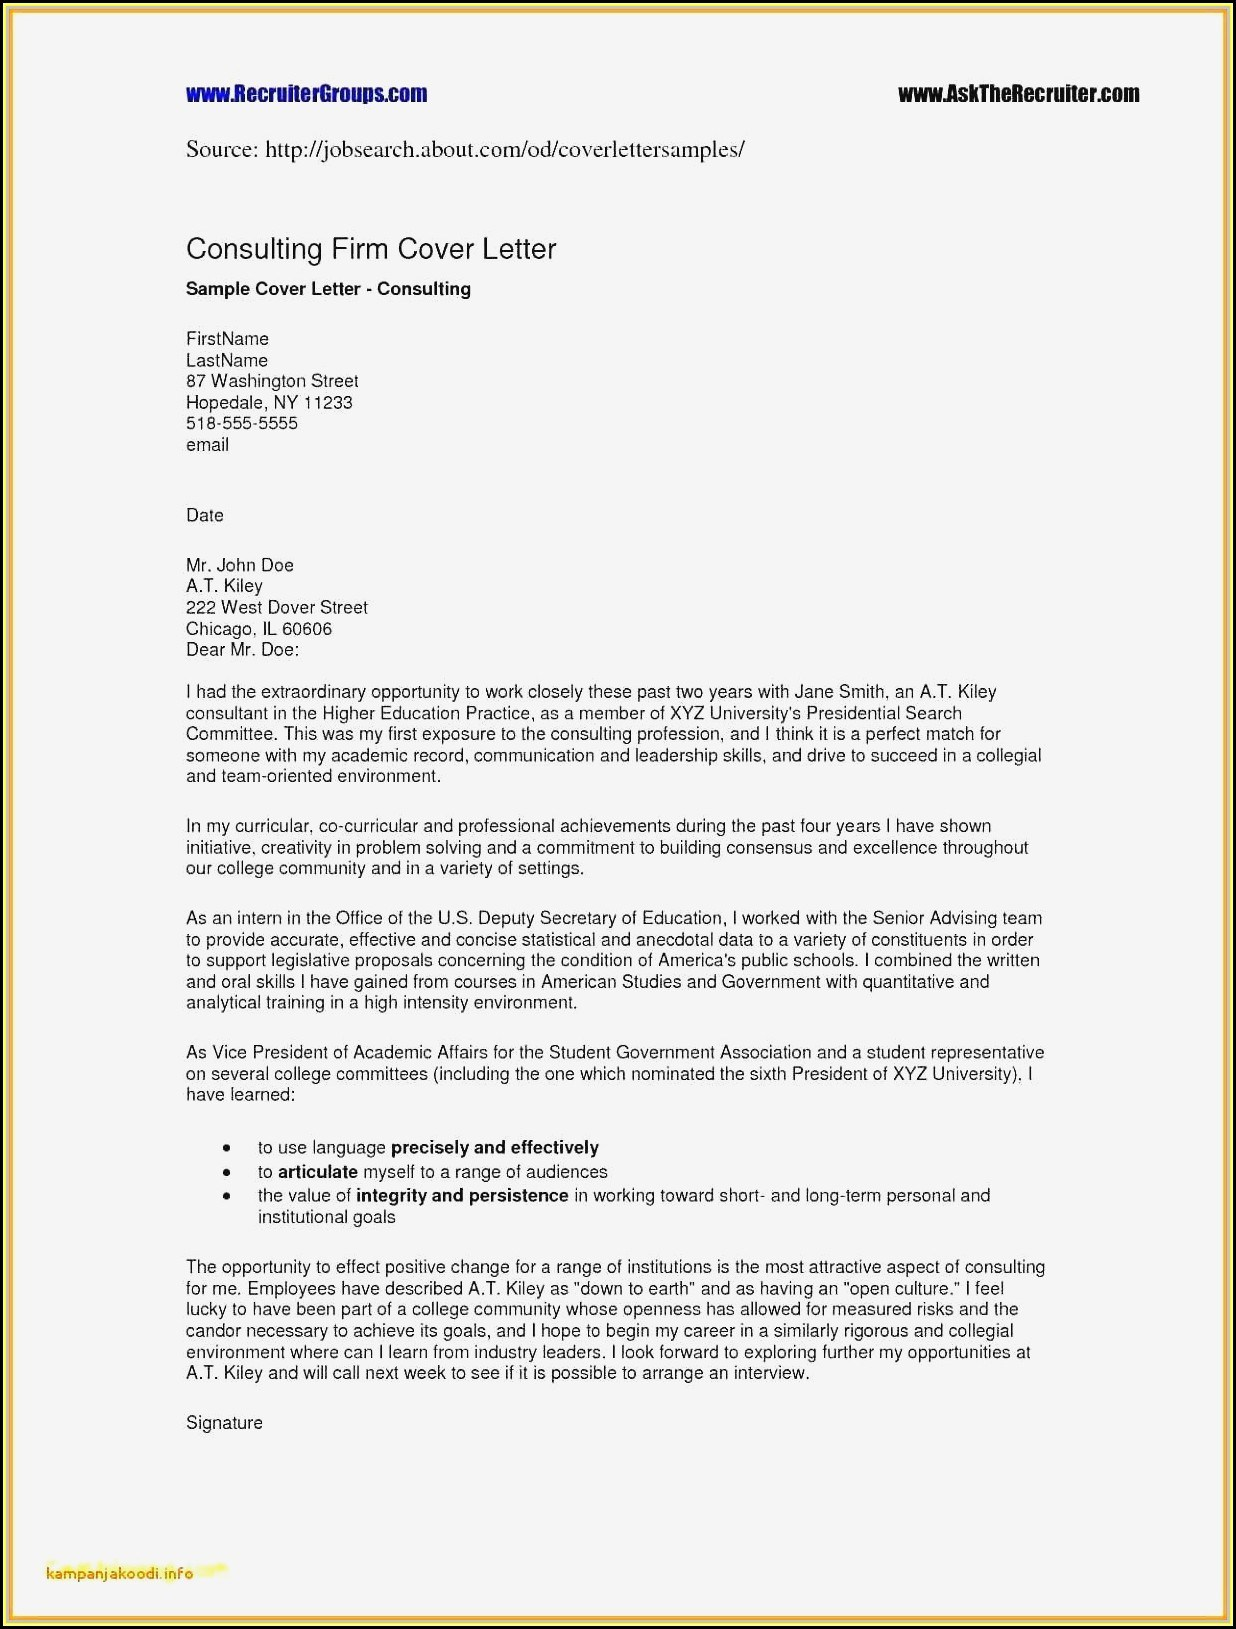 san diego resume writing service best services in writers effective for freshers software Resume Resume Services San Diego